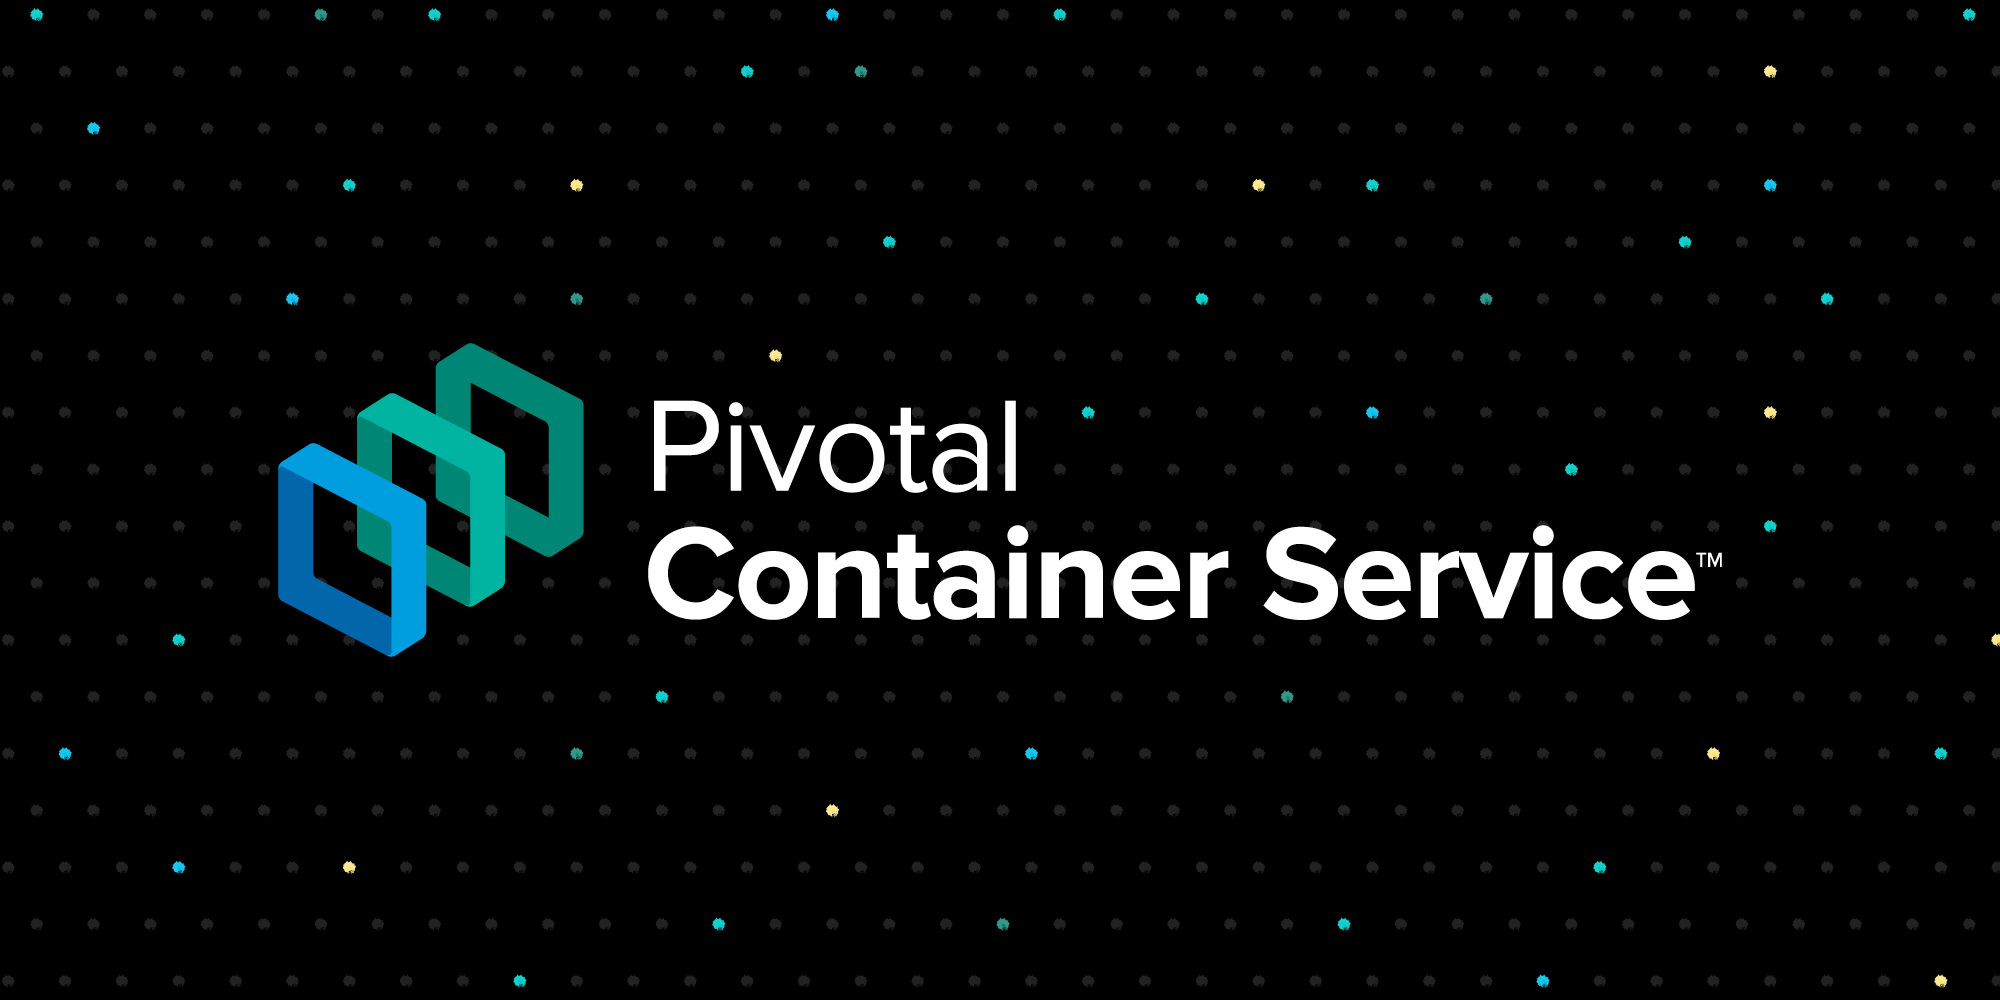 Pivotal Container Service Adds Azure to Its Multicloud Arsenal